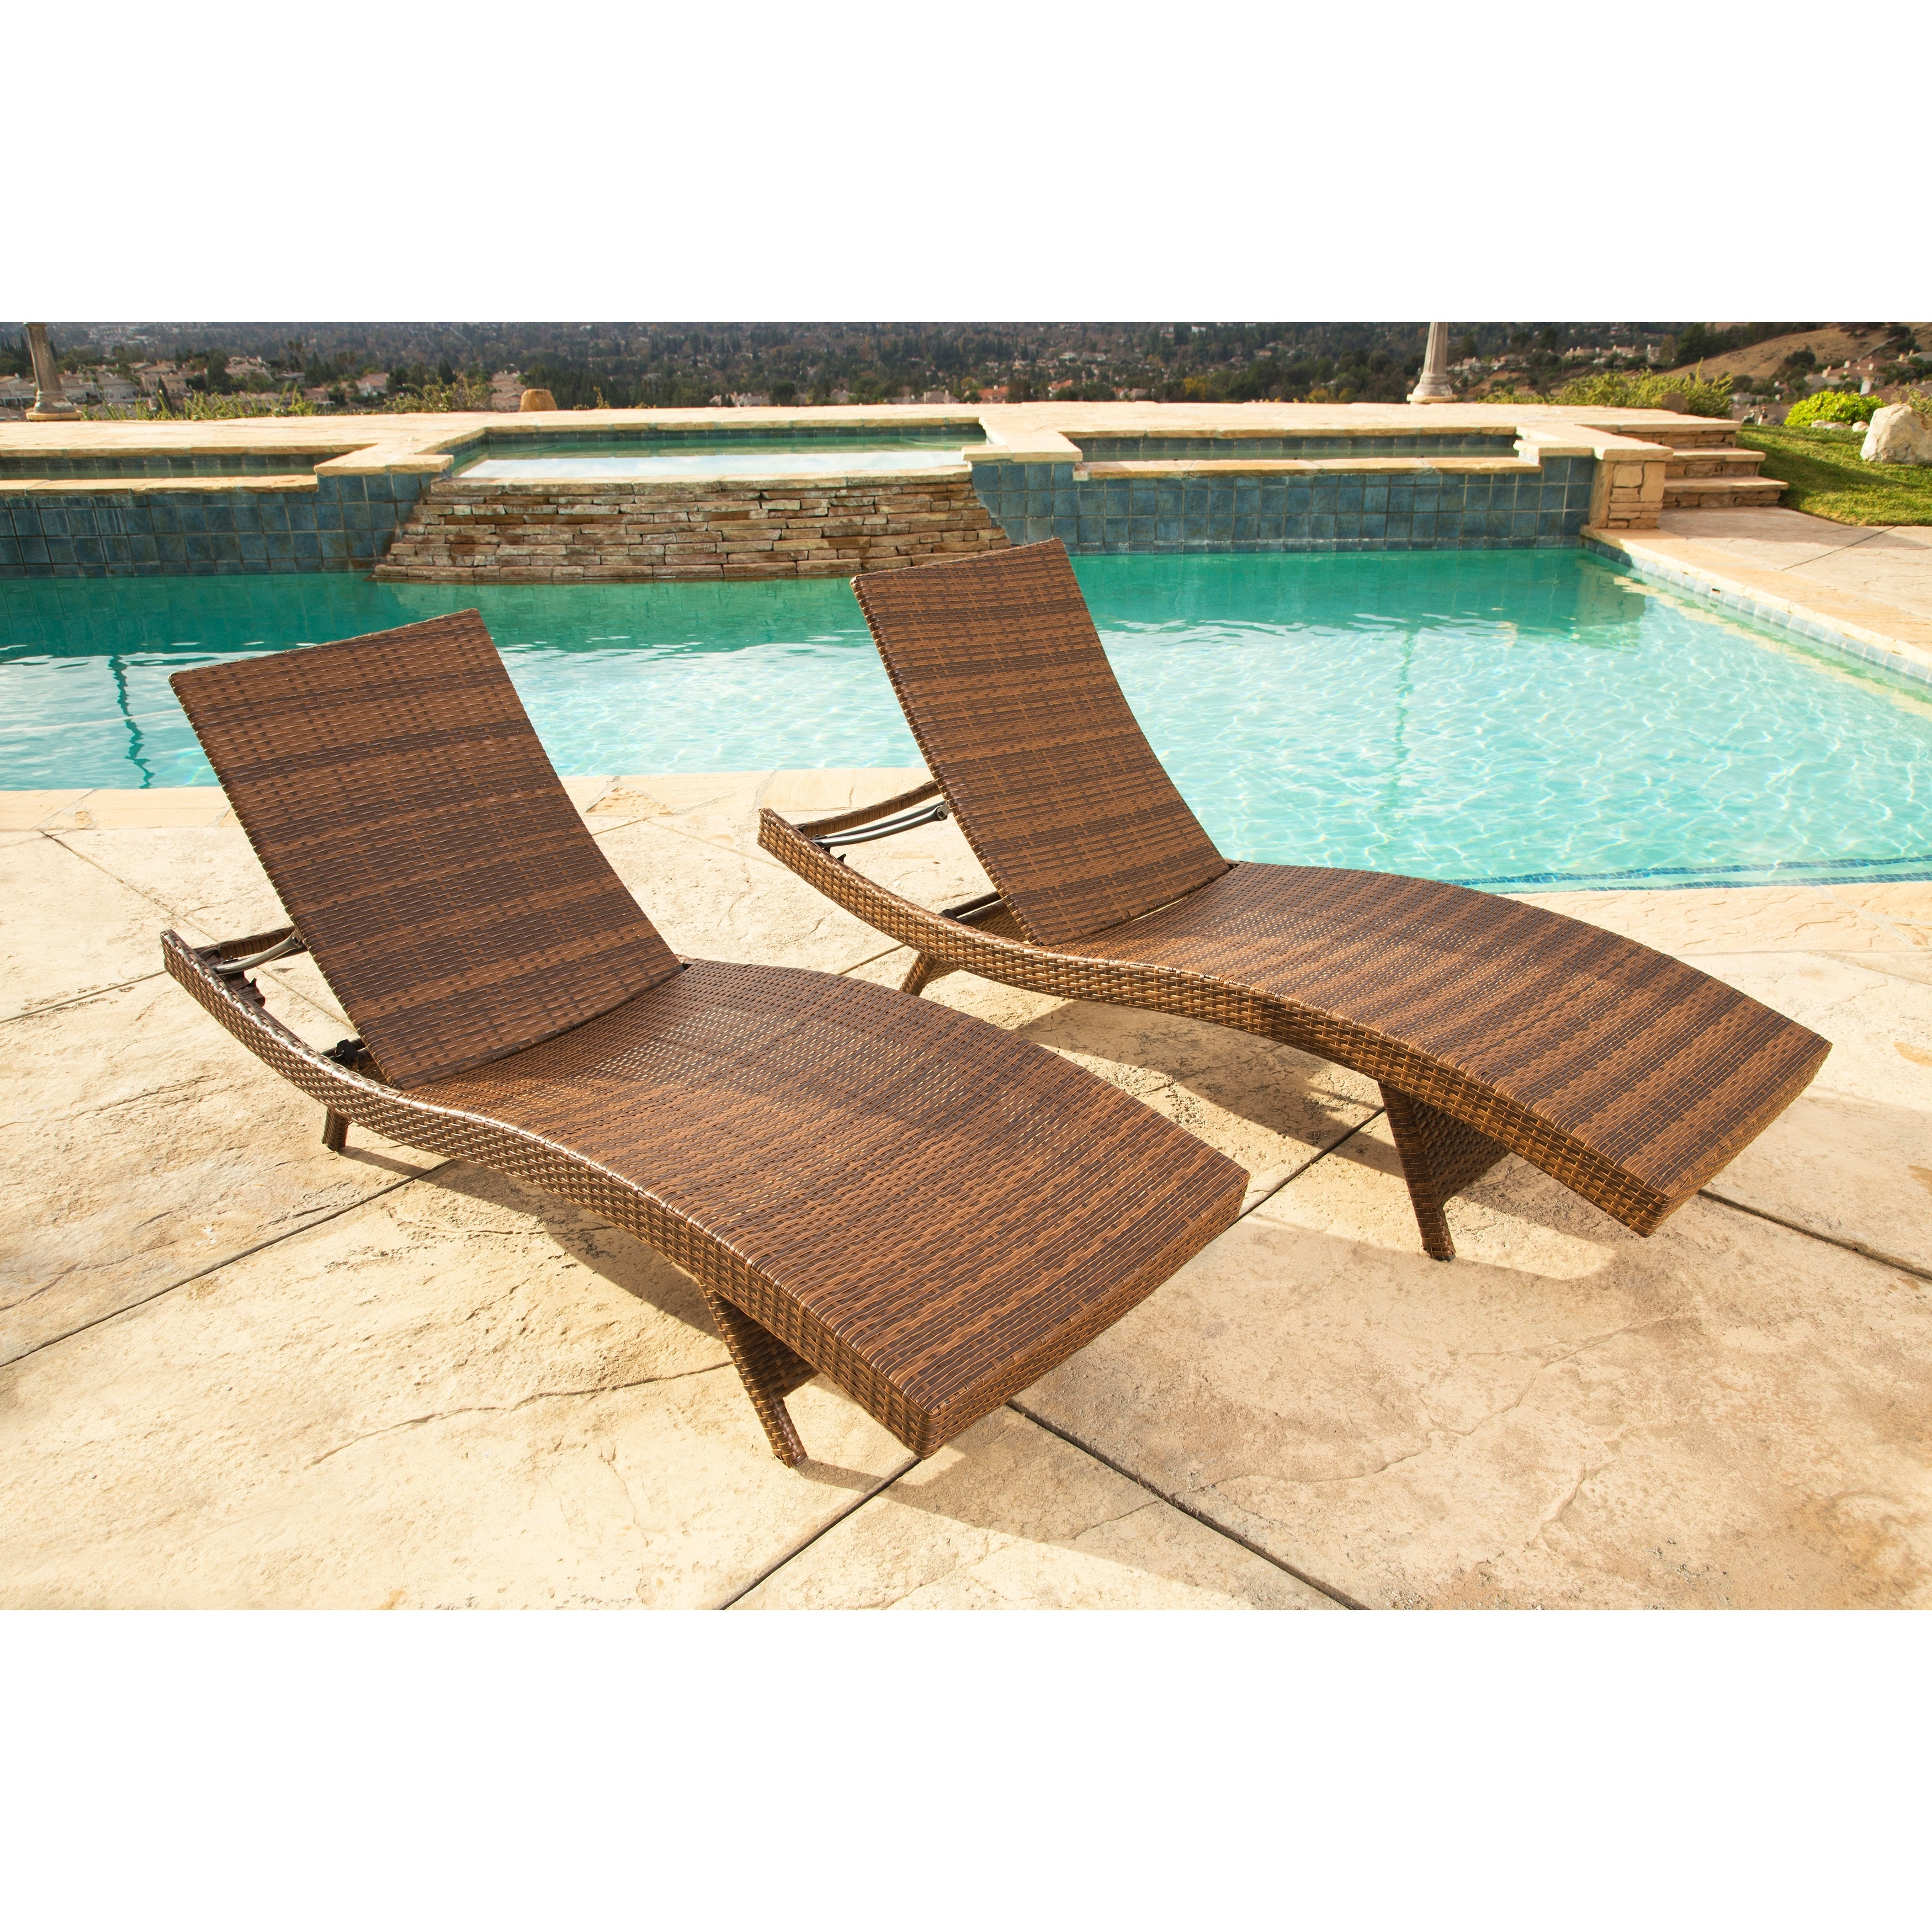 Overstock Outdoor Chaise Lounge Chairs Regarding 2018 Abbyson Palermo Outdoor Brown Wicker Chaise Lounge Set – Free (View 11 of 15)